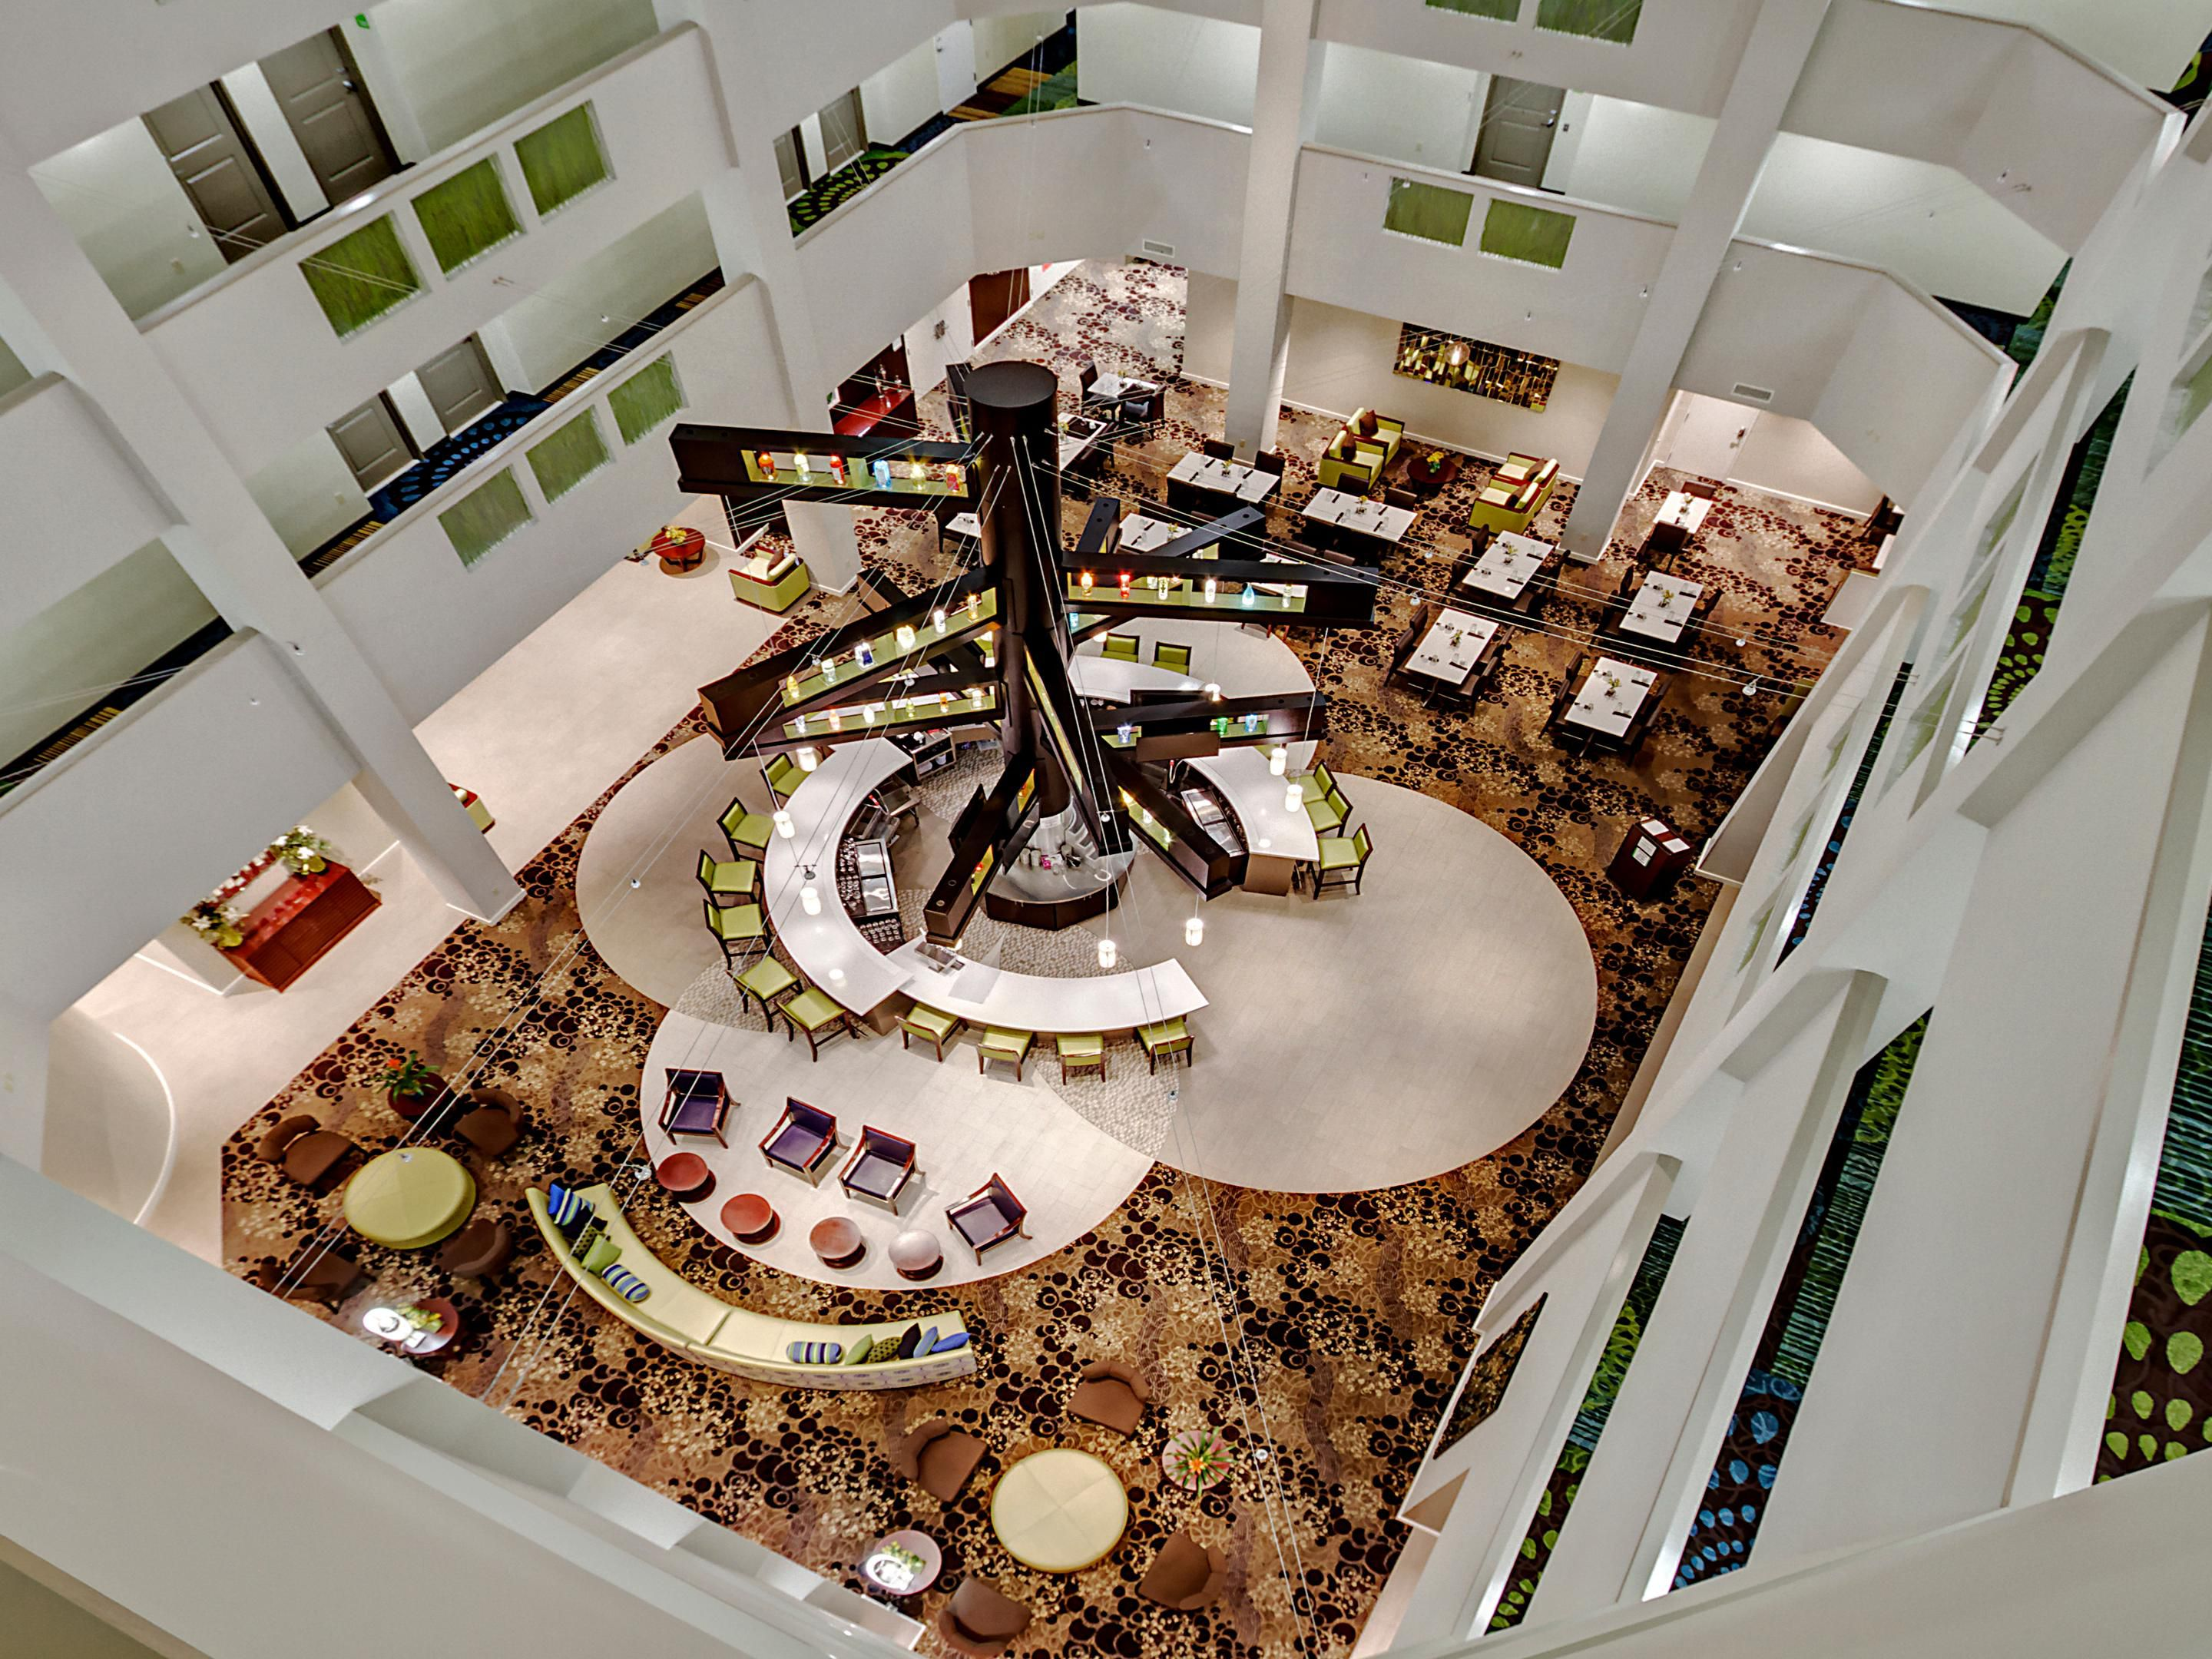 Spectacular view of our atrium from the top floor.